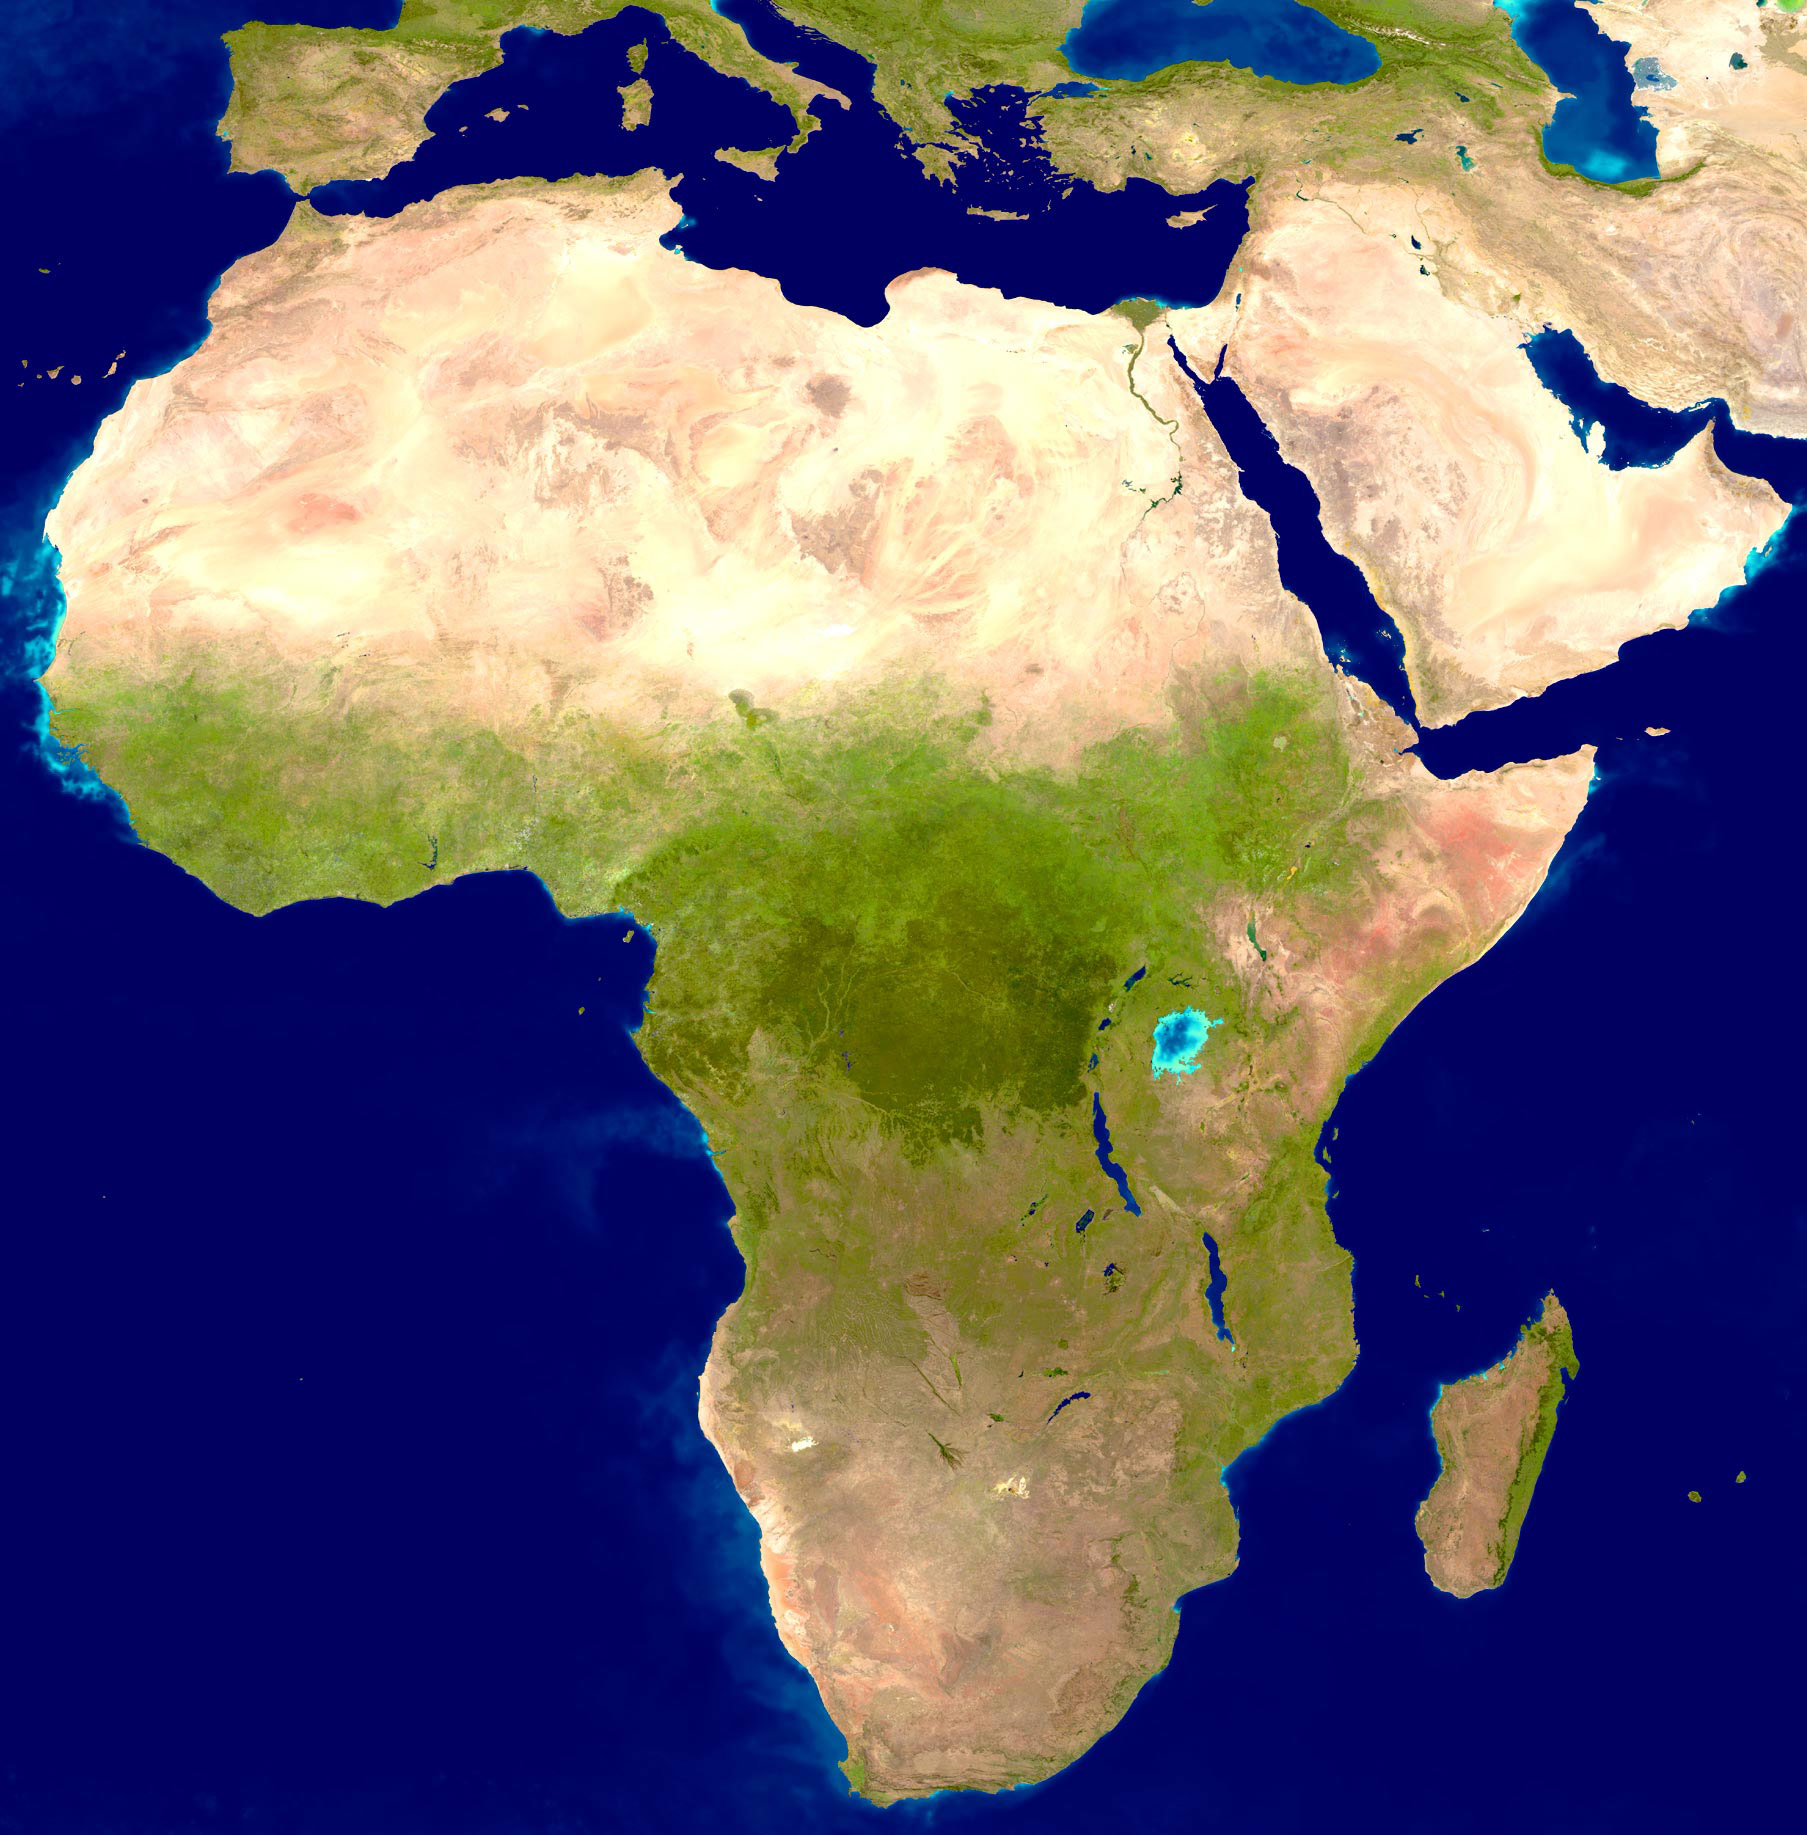 Africa Satellite Image large map